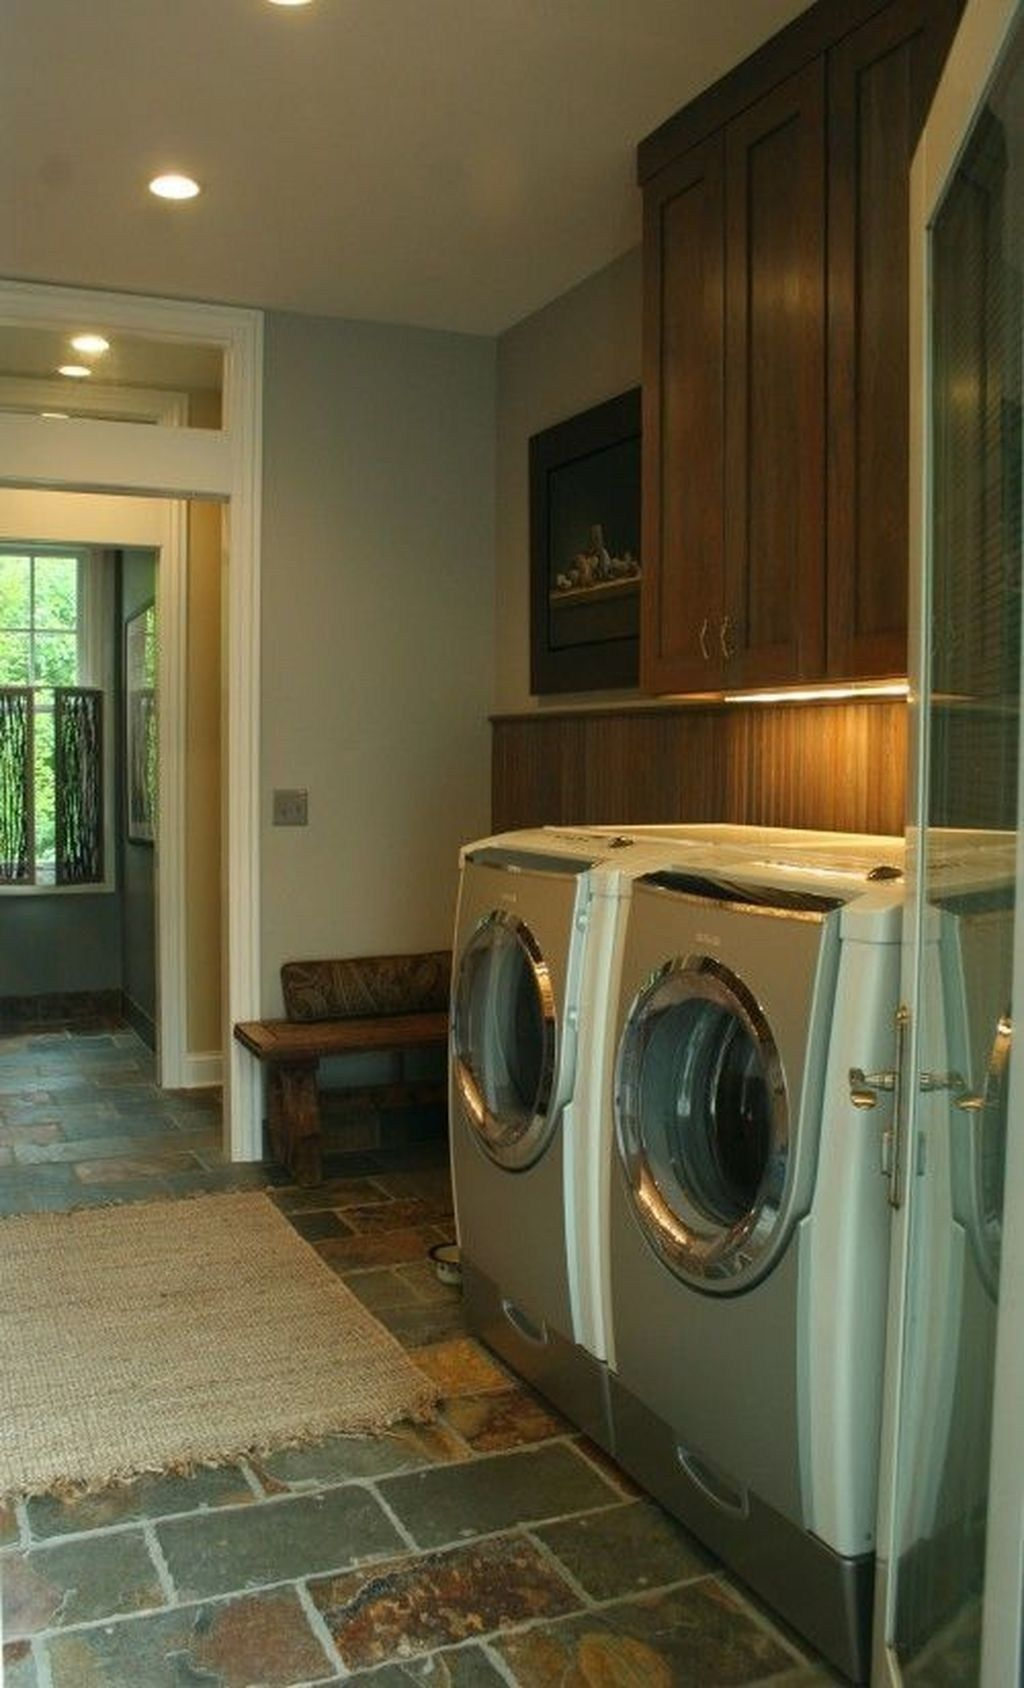 30+ Modern Tile Design Ideas For Your Laundry Room (With